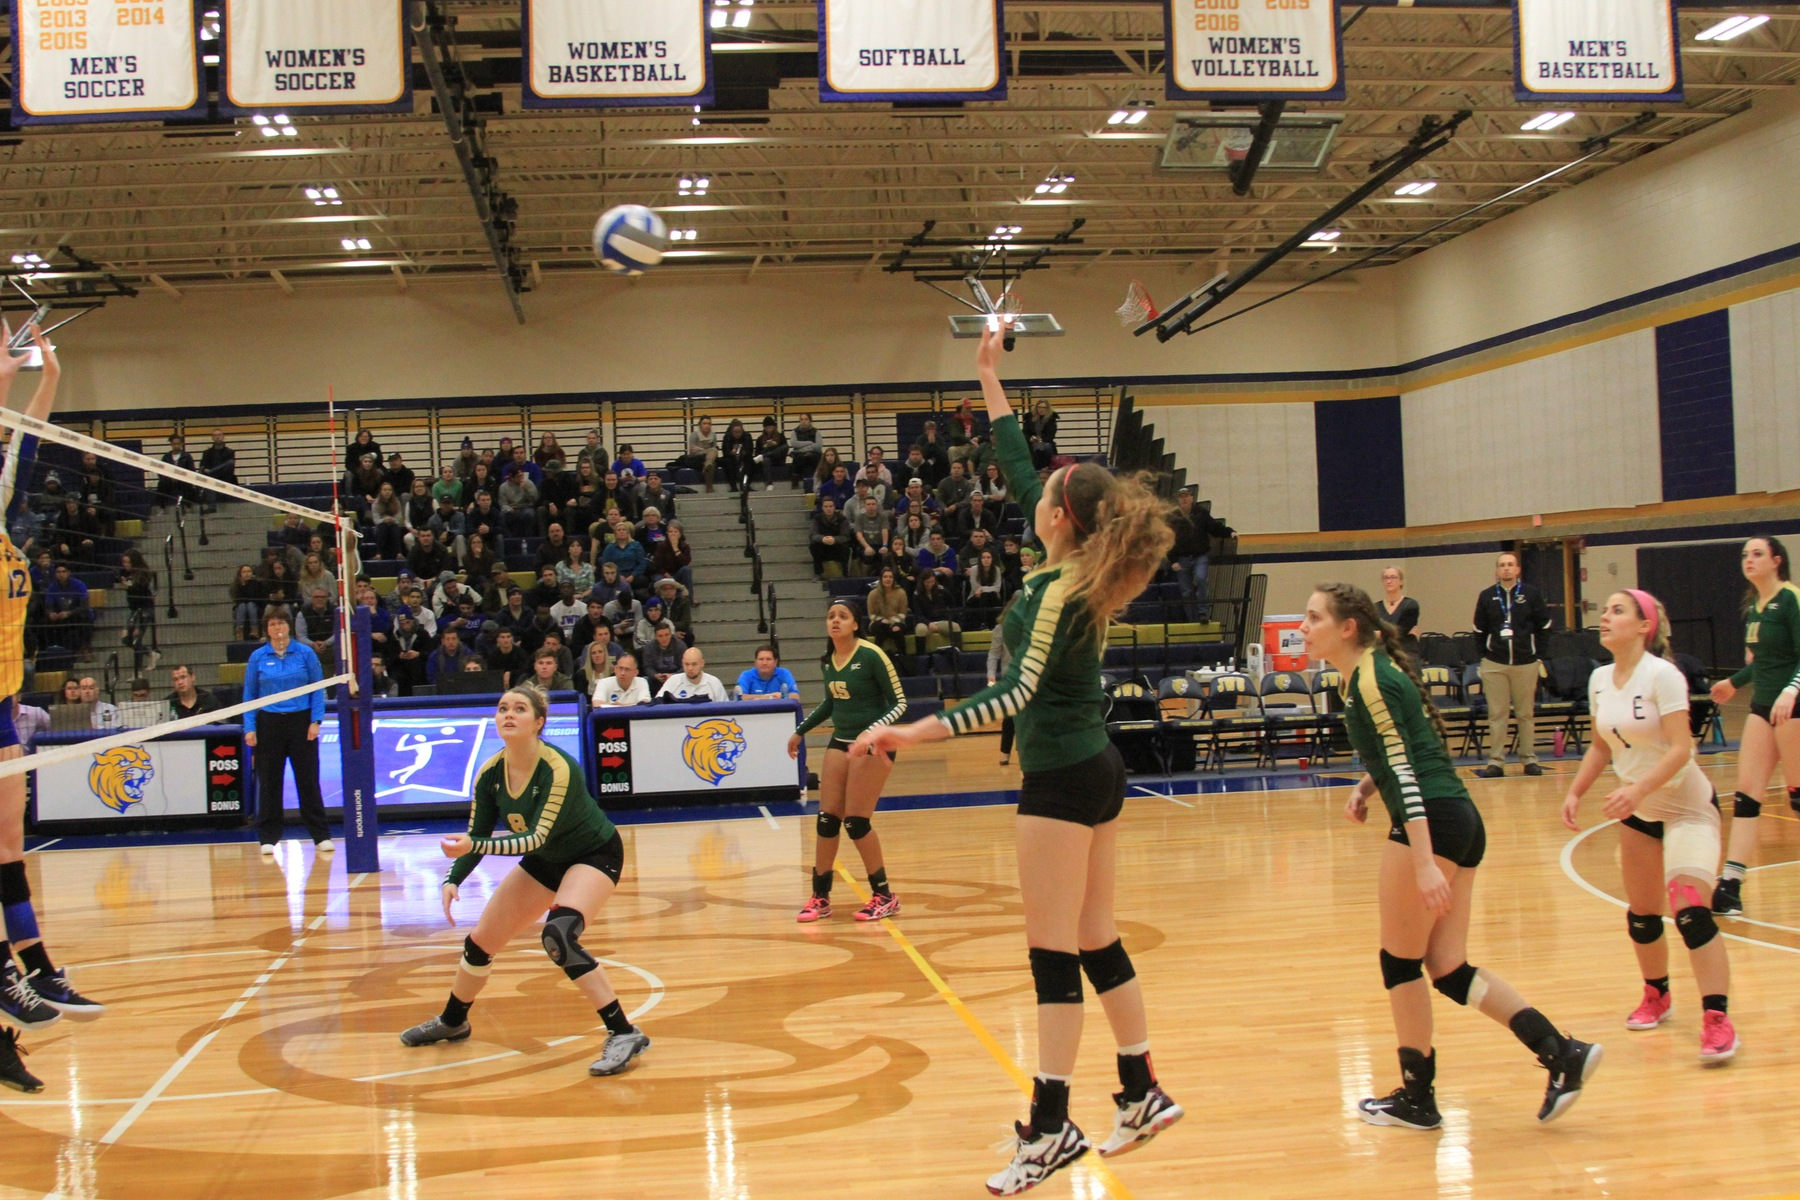 Women's Volleyball Falls To Johnson & Wales In NCAA Opening Round